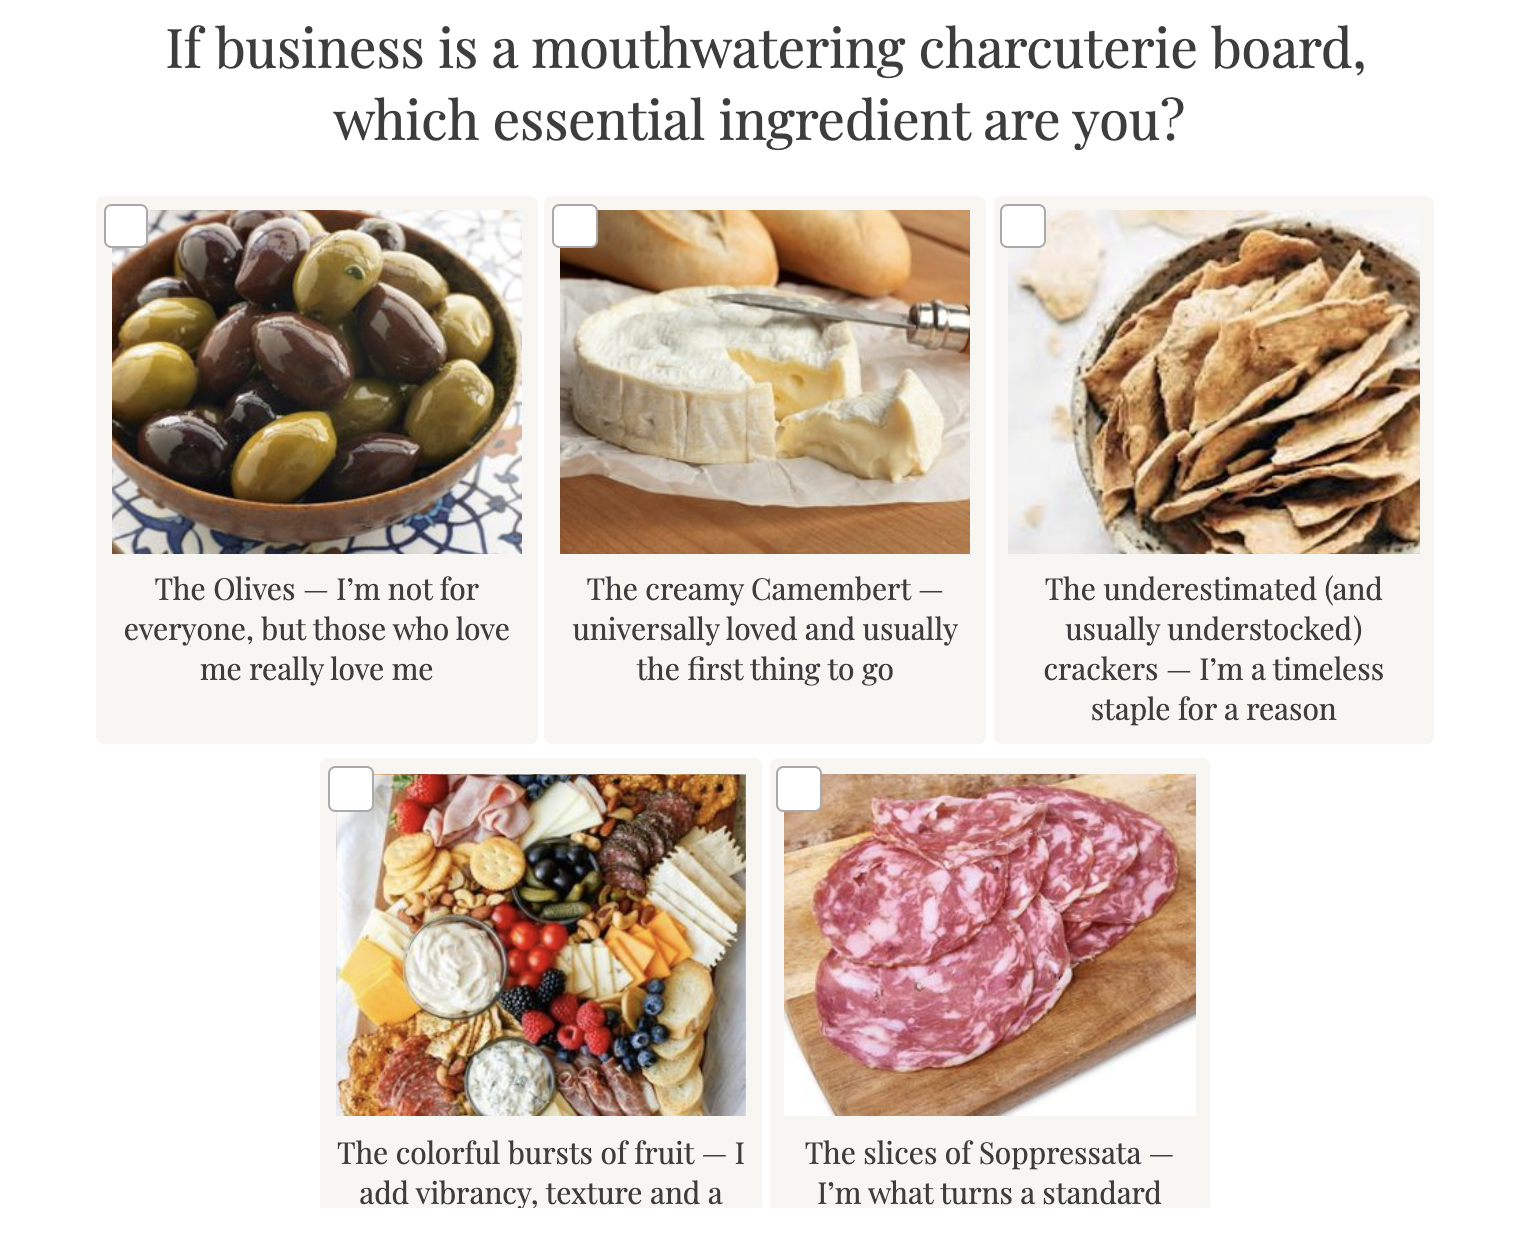 question about charcuterie board items